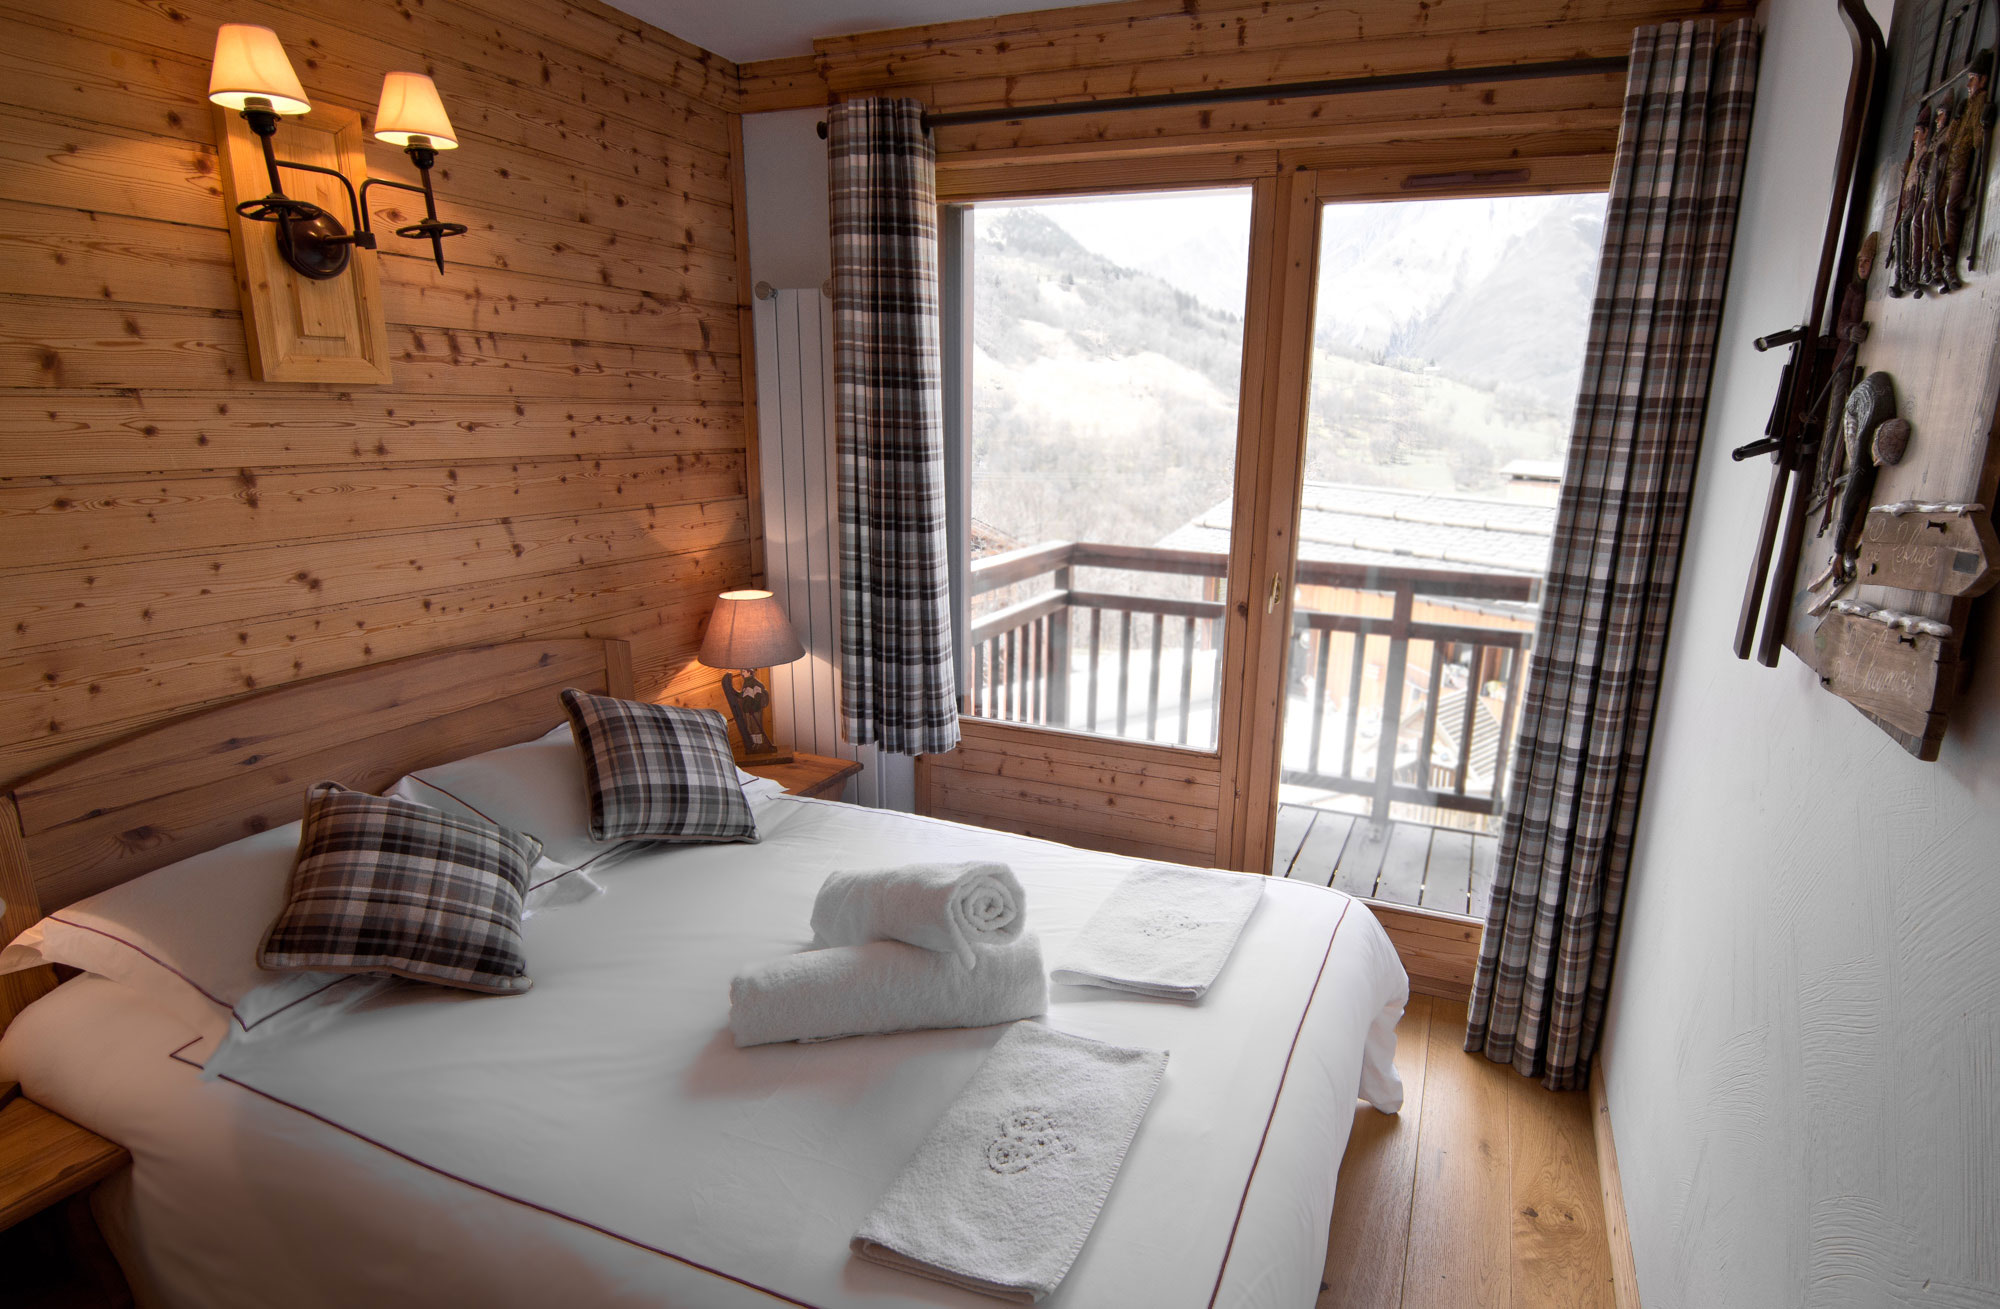 Chalet with balcony and mountain views in St Martin de Belleville.